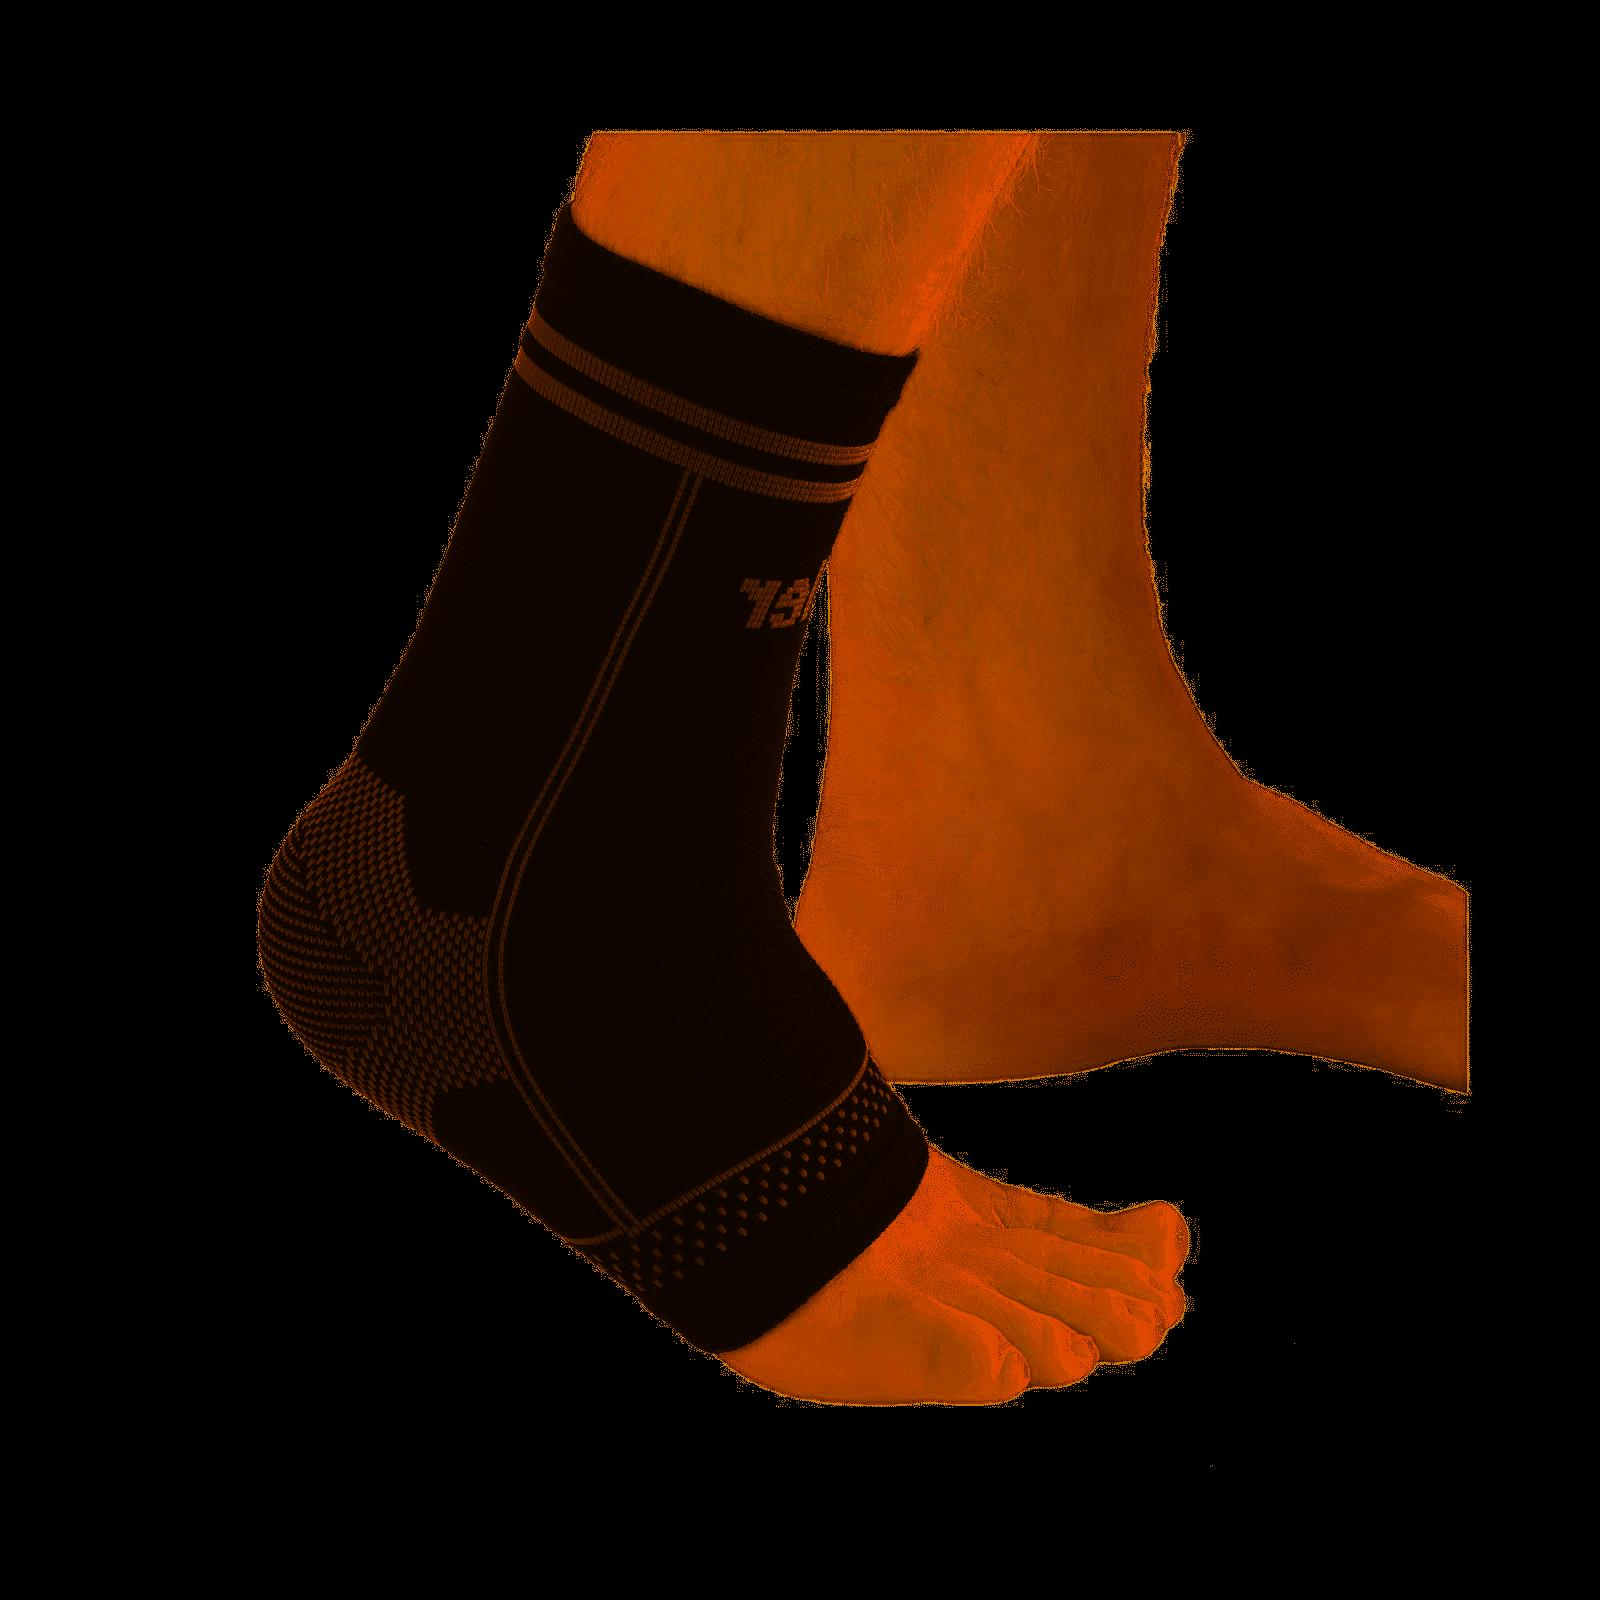 care stretch ankle support braces